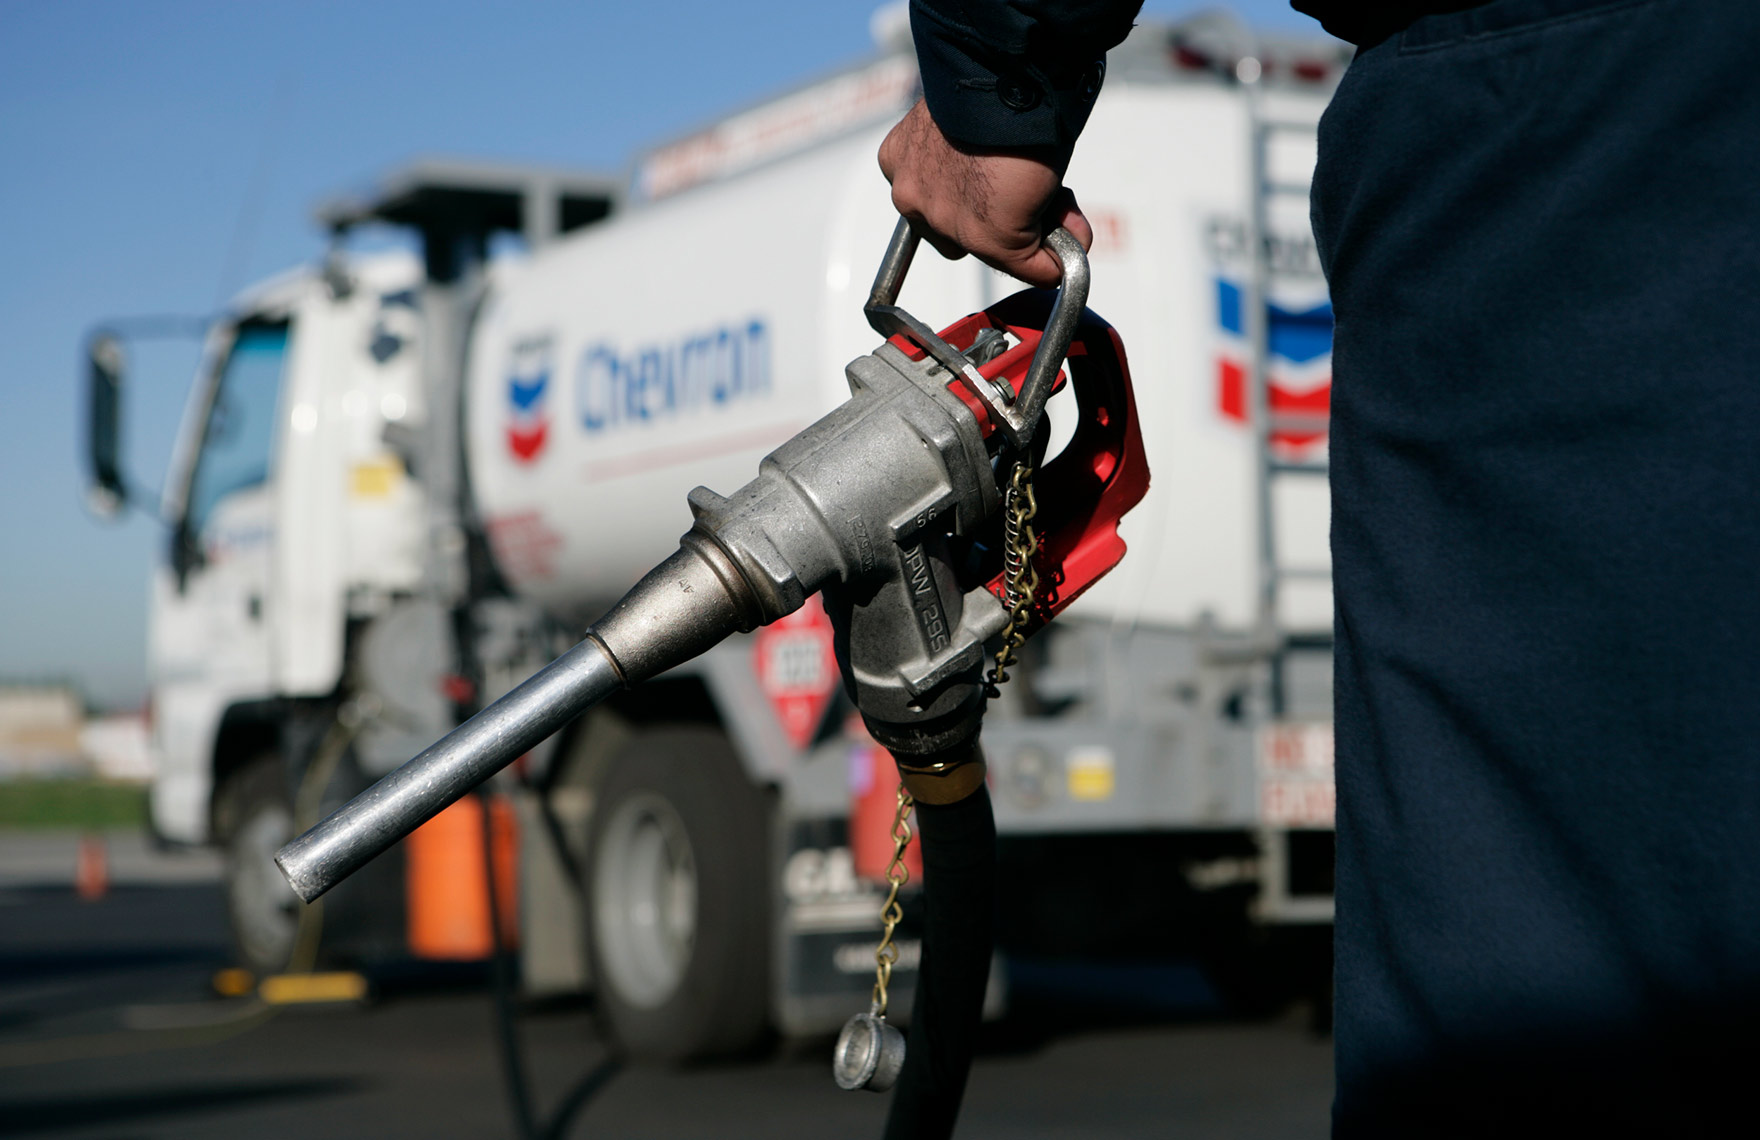 Chevron Fueler at VNY - Aviation Photographer- Steve Craft Photography - Phoenix, Arizona - Portrait